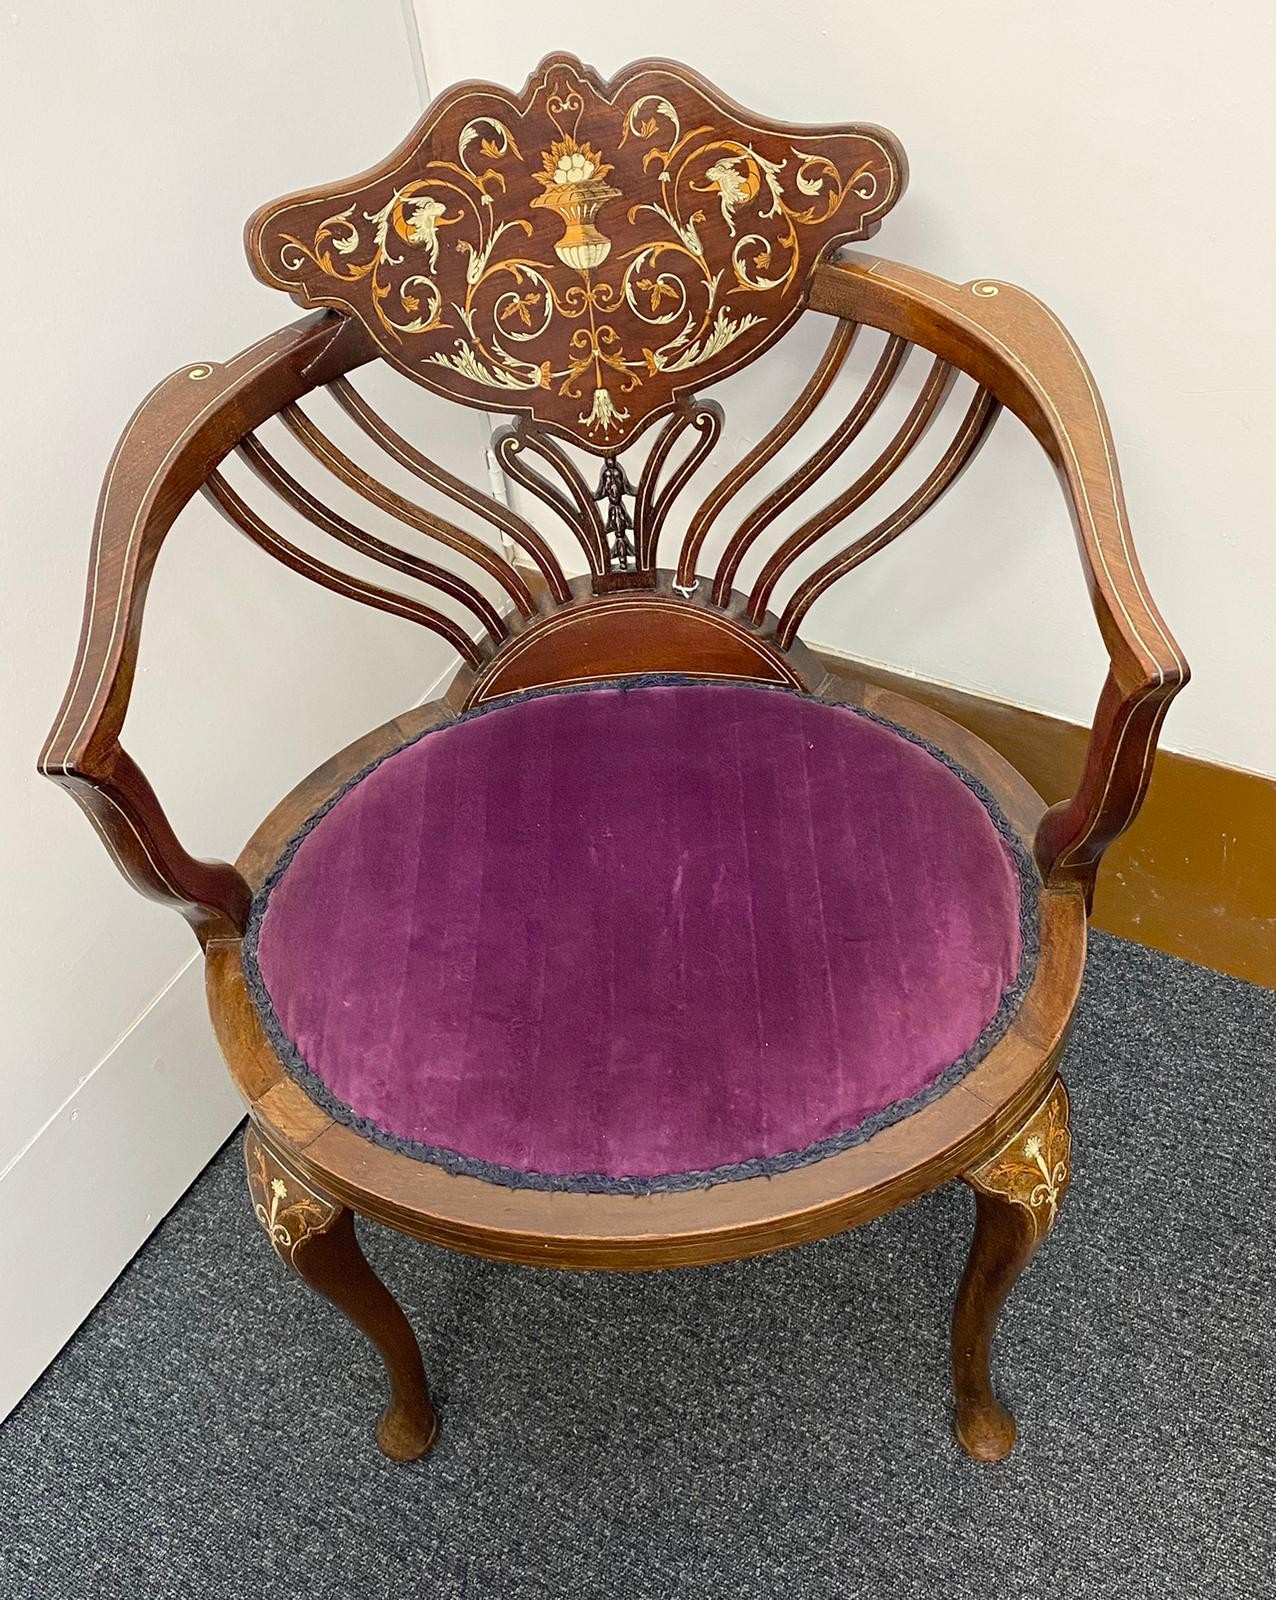 Designed by Stephen Web for Collinson and Lock and Sold by Waring & Gillow in 1890 to the Thomas